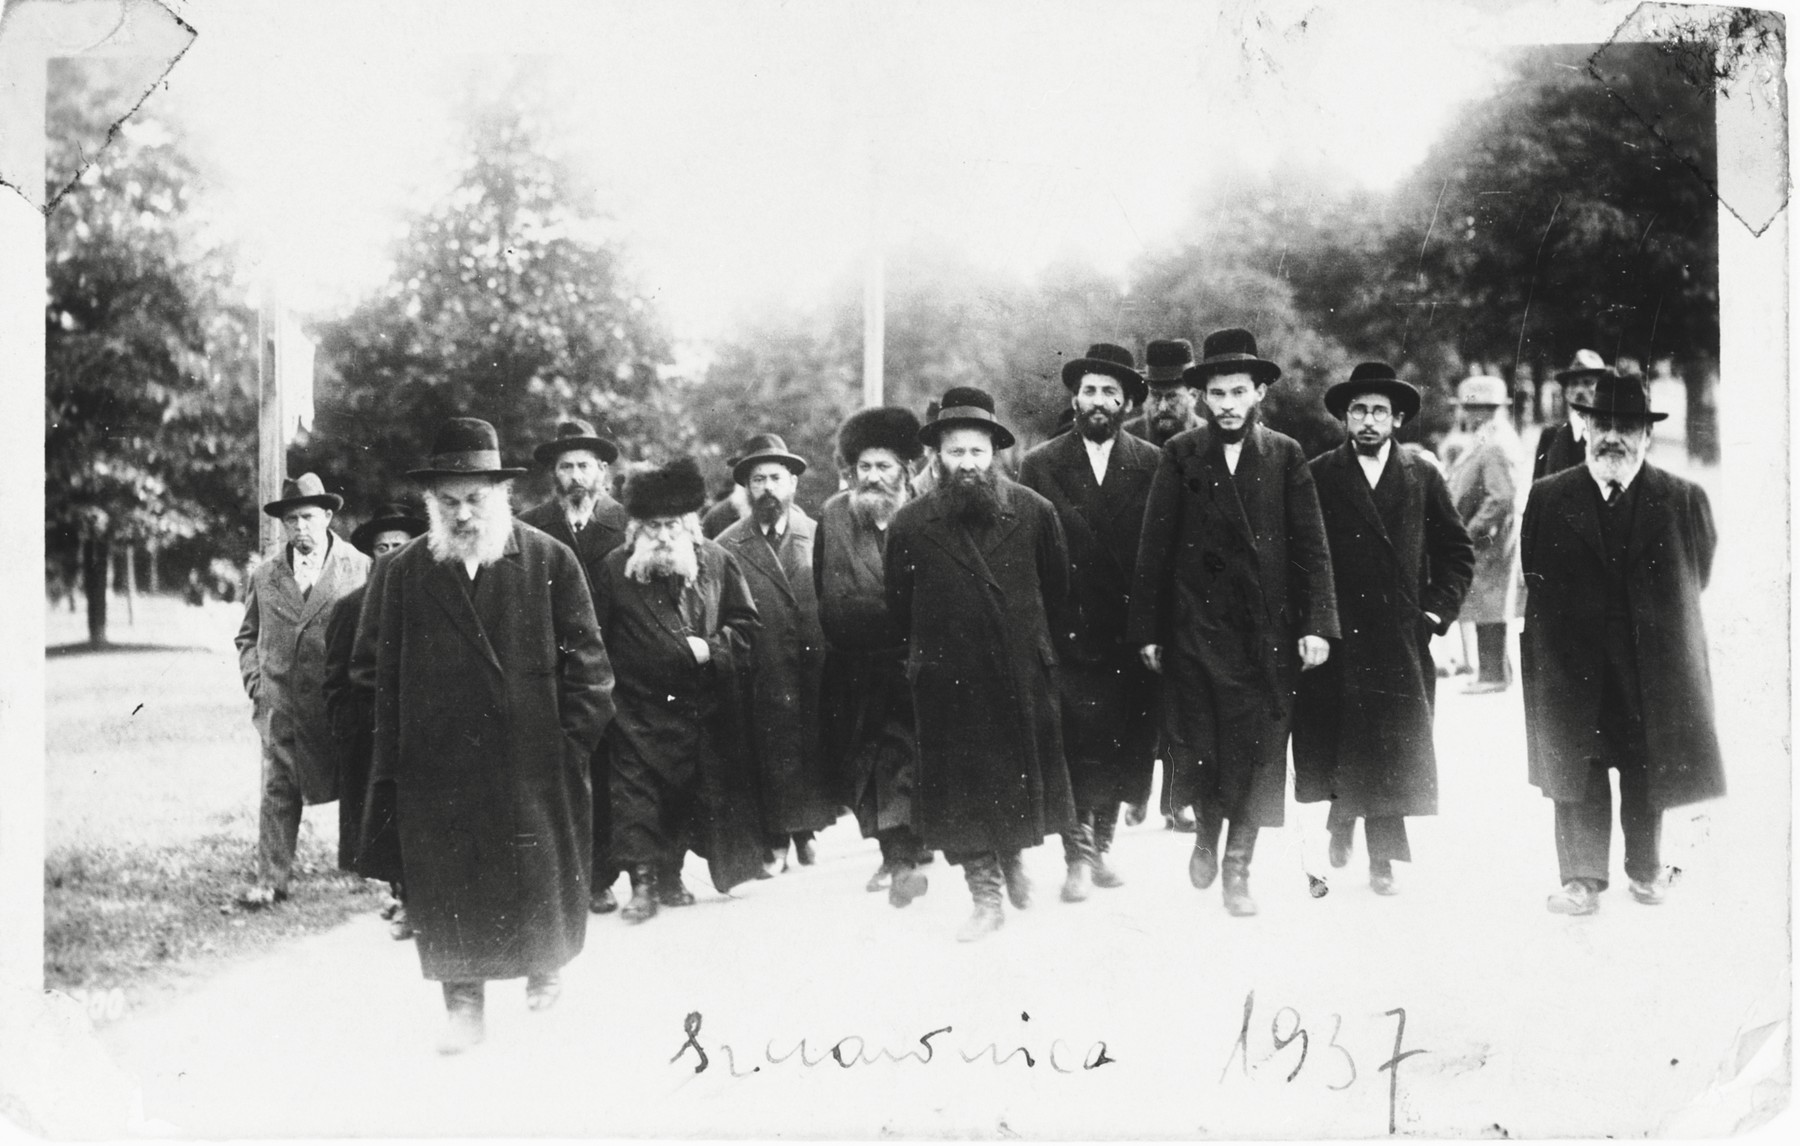 The Gerer Rebbe, Rabbi Abraham Mordecai Alter, walks along a street of a resort town accompanied by a group of his followers.  Also pictured are Rav Bunim Levin (brother of the Rabbi of Bedzin) and Rabbi Meir Alter (the eldest son of the Gerer rebbe).